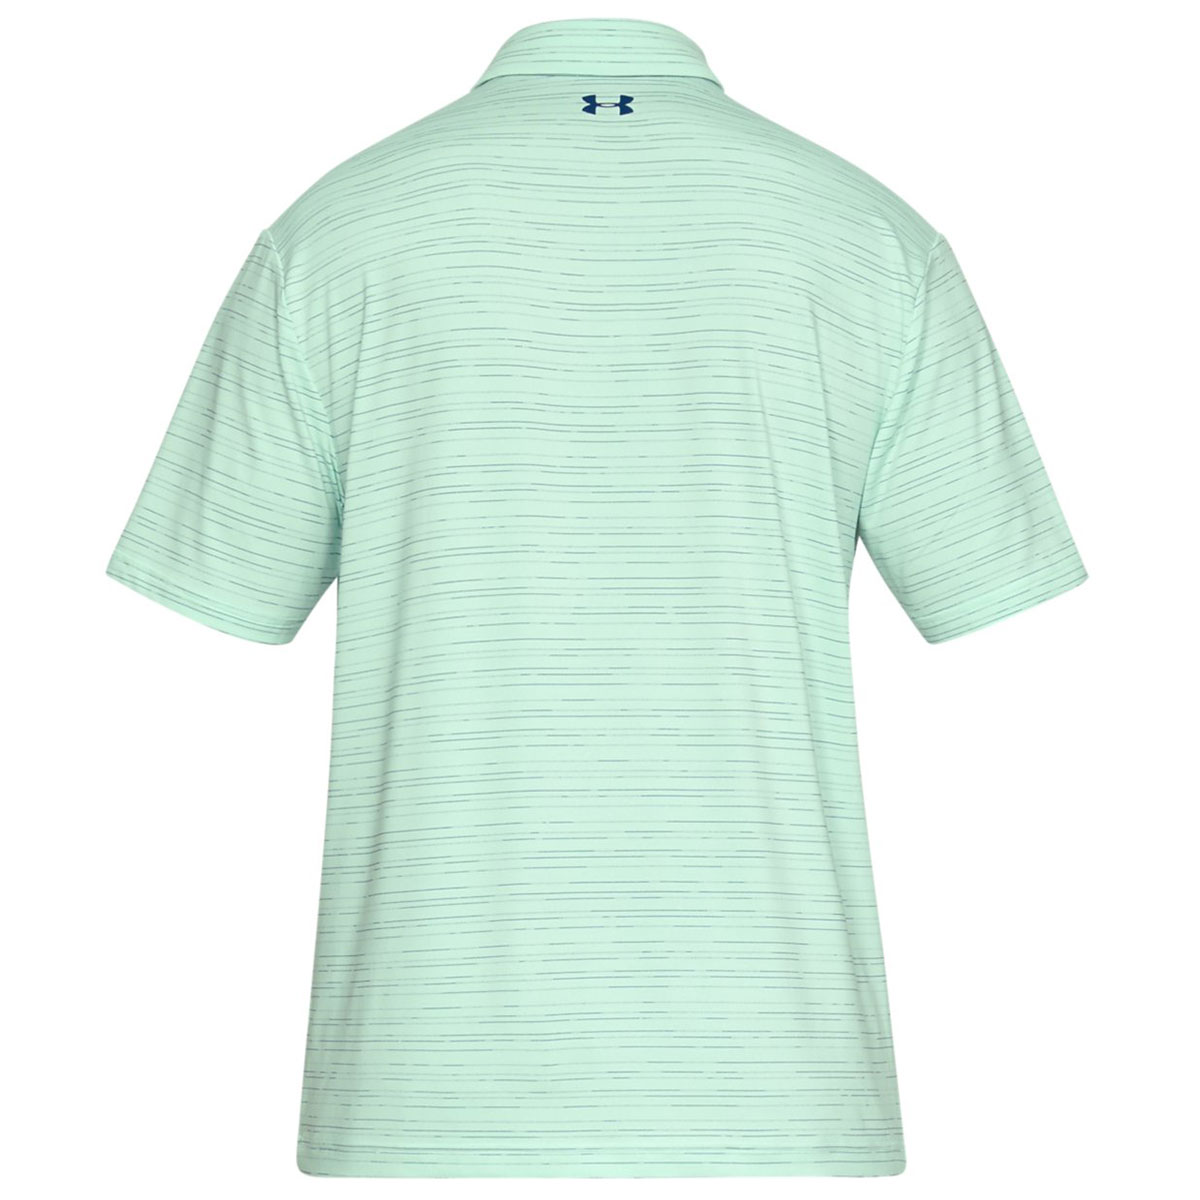 Under-Armour-Mens-2019-Playoff-Polo-2-0-Breathable-Light-Stretch-Polo-Shirt thumbnail 21